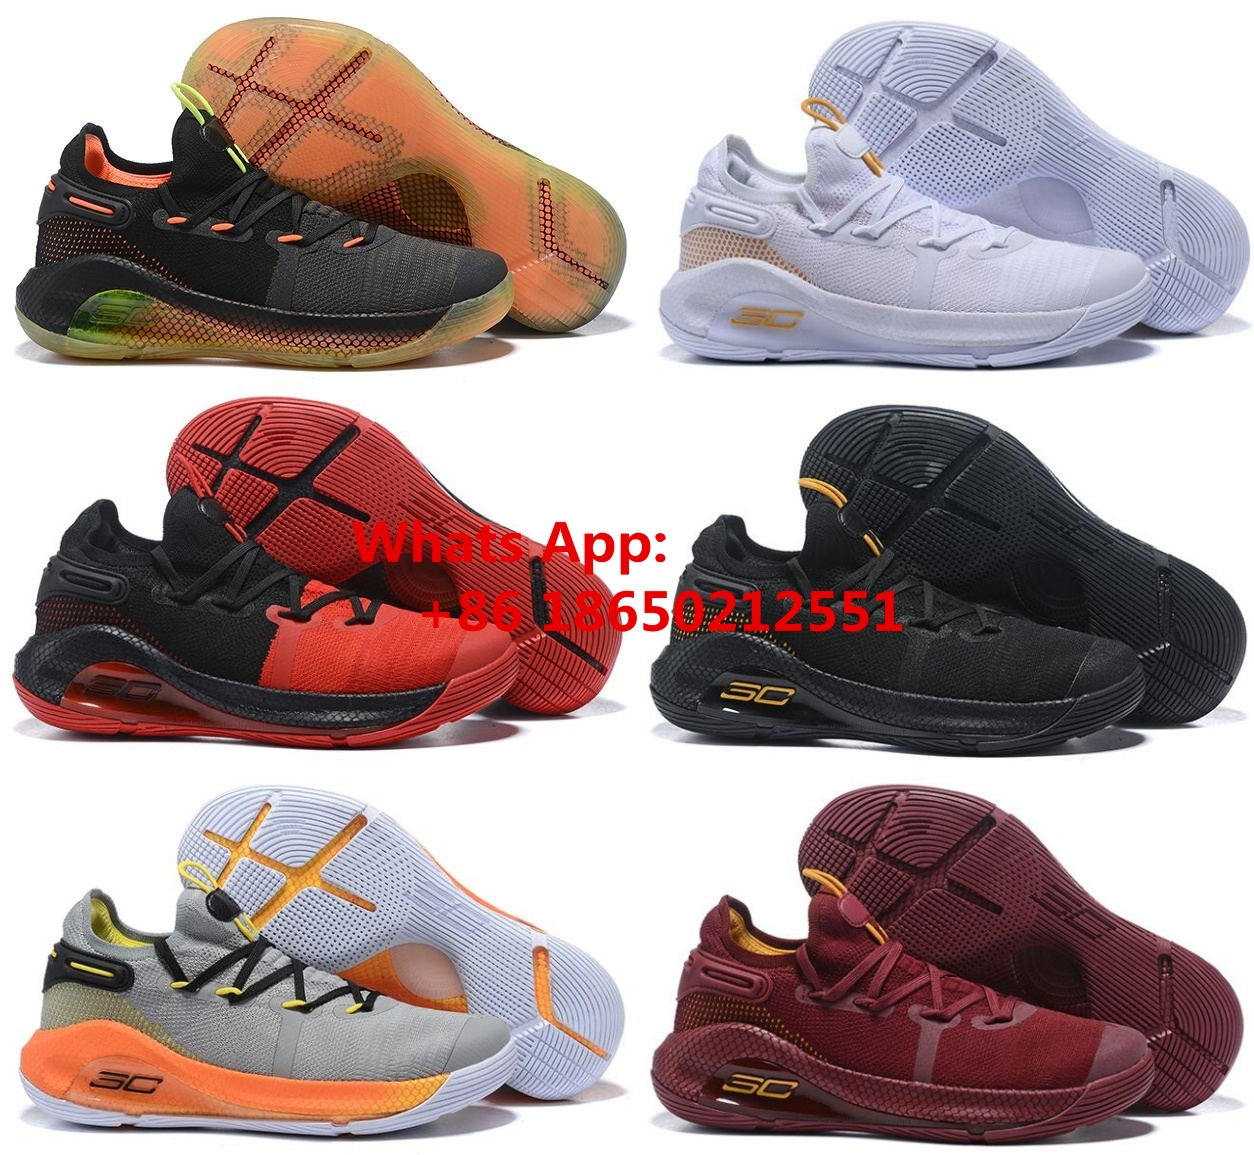 5b1c0b36467a Under Armour Curry 6 Triple Black Basketball Shoes For Men Color gold red  yellow white